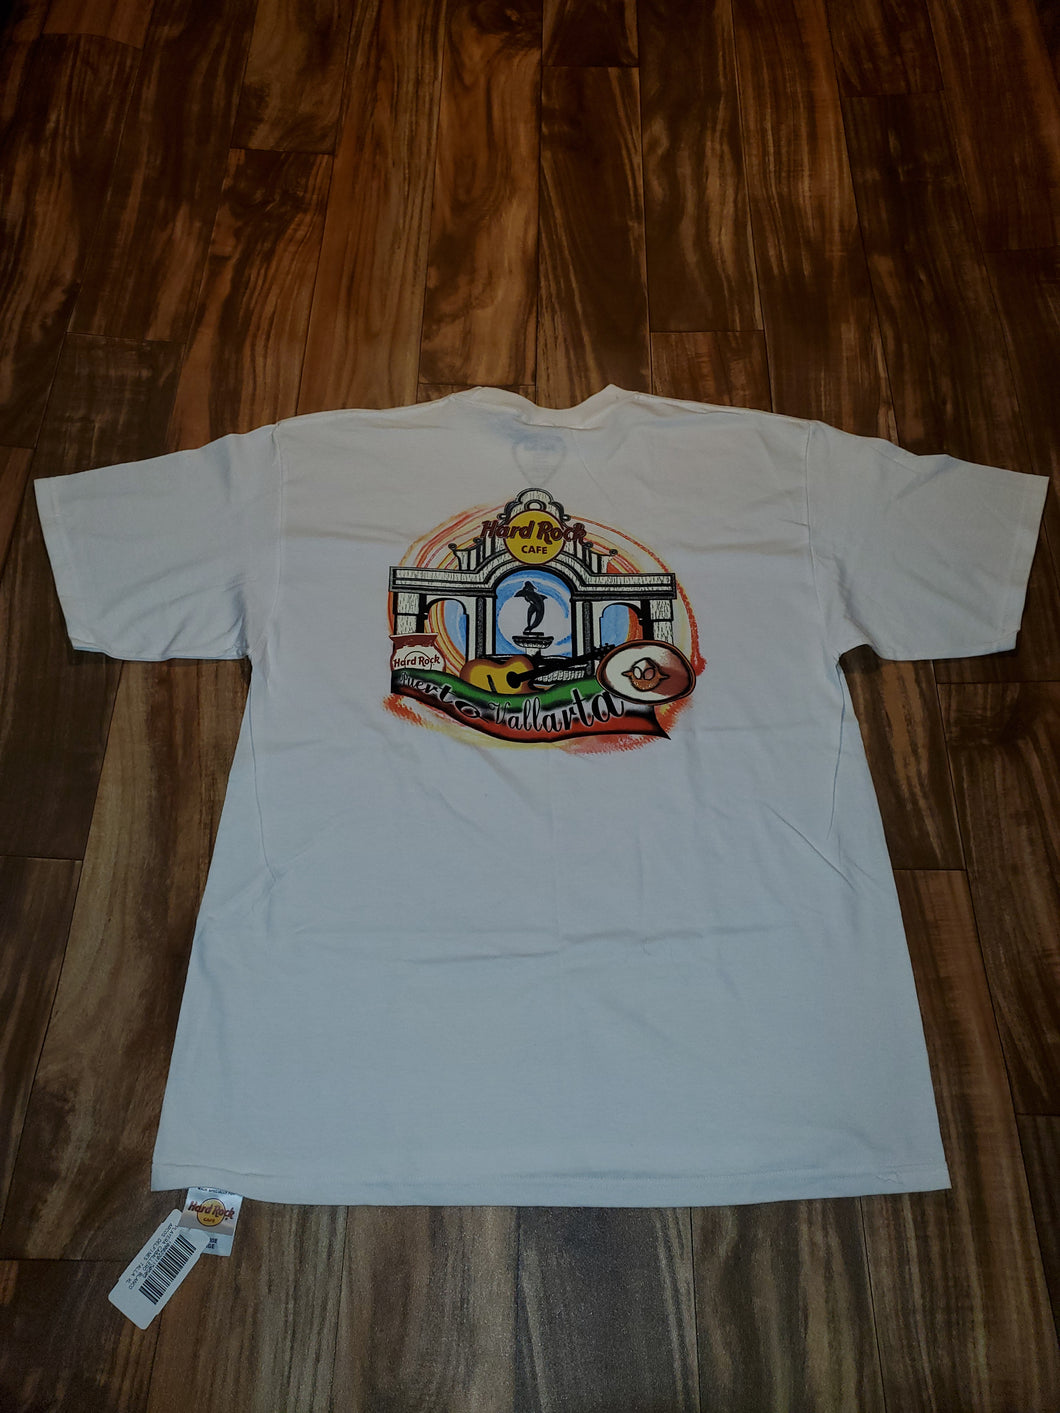 XL - NEW Hard Rock Cafe Shirt